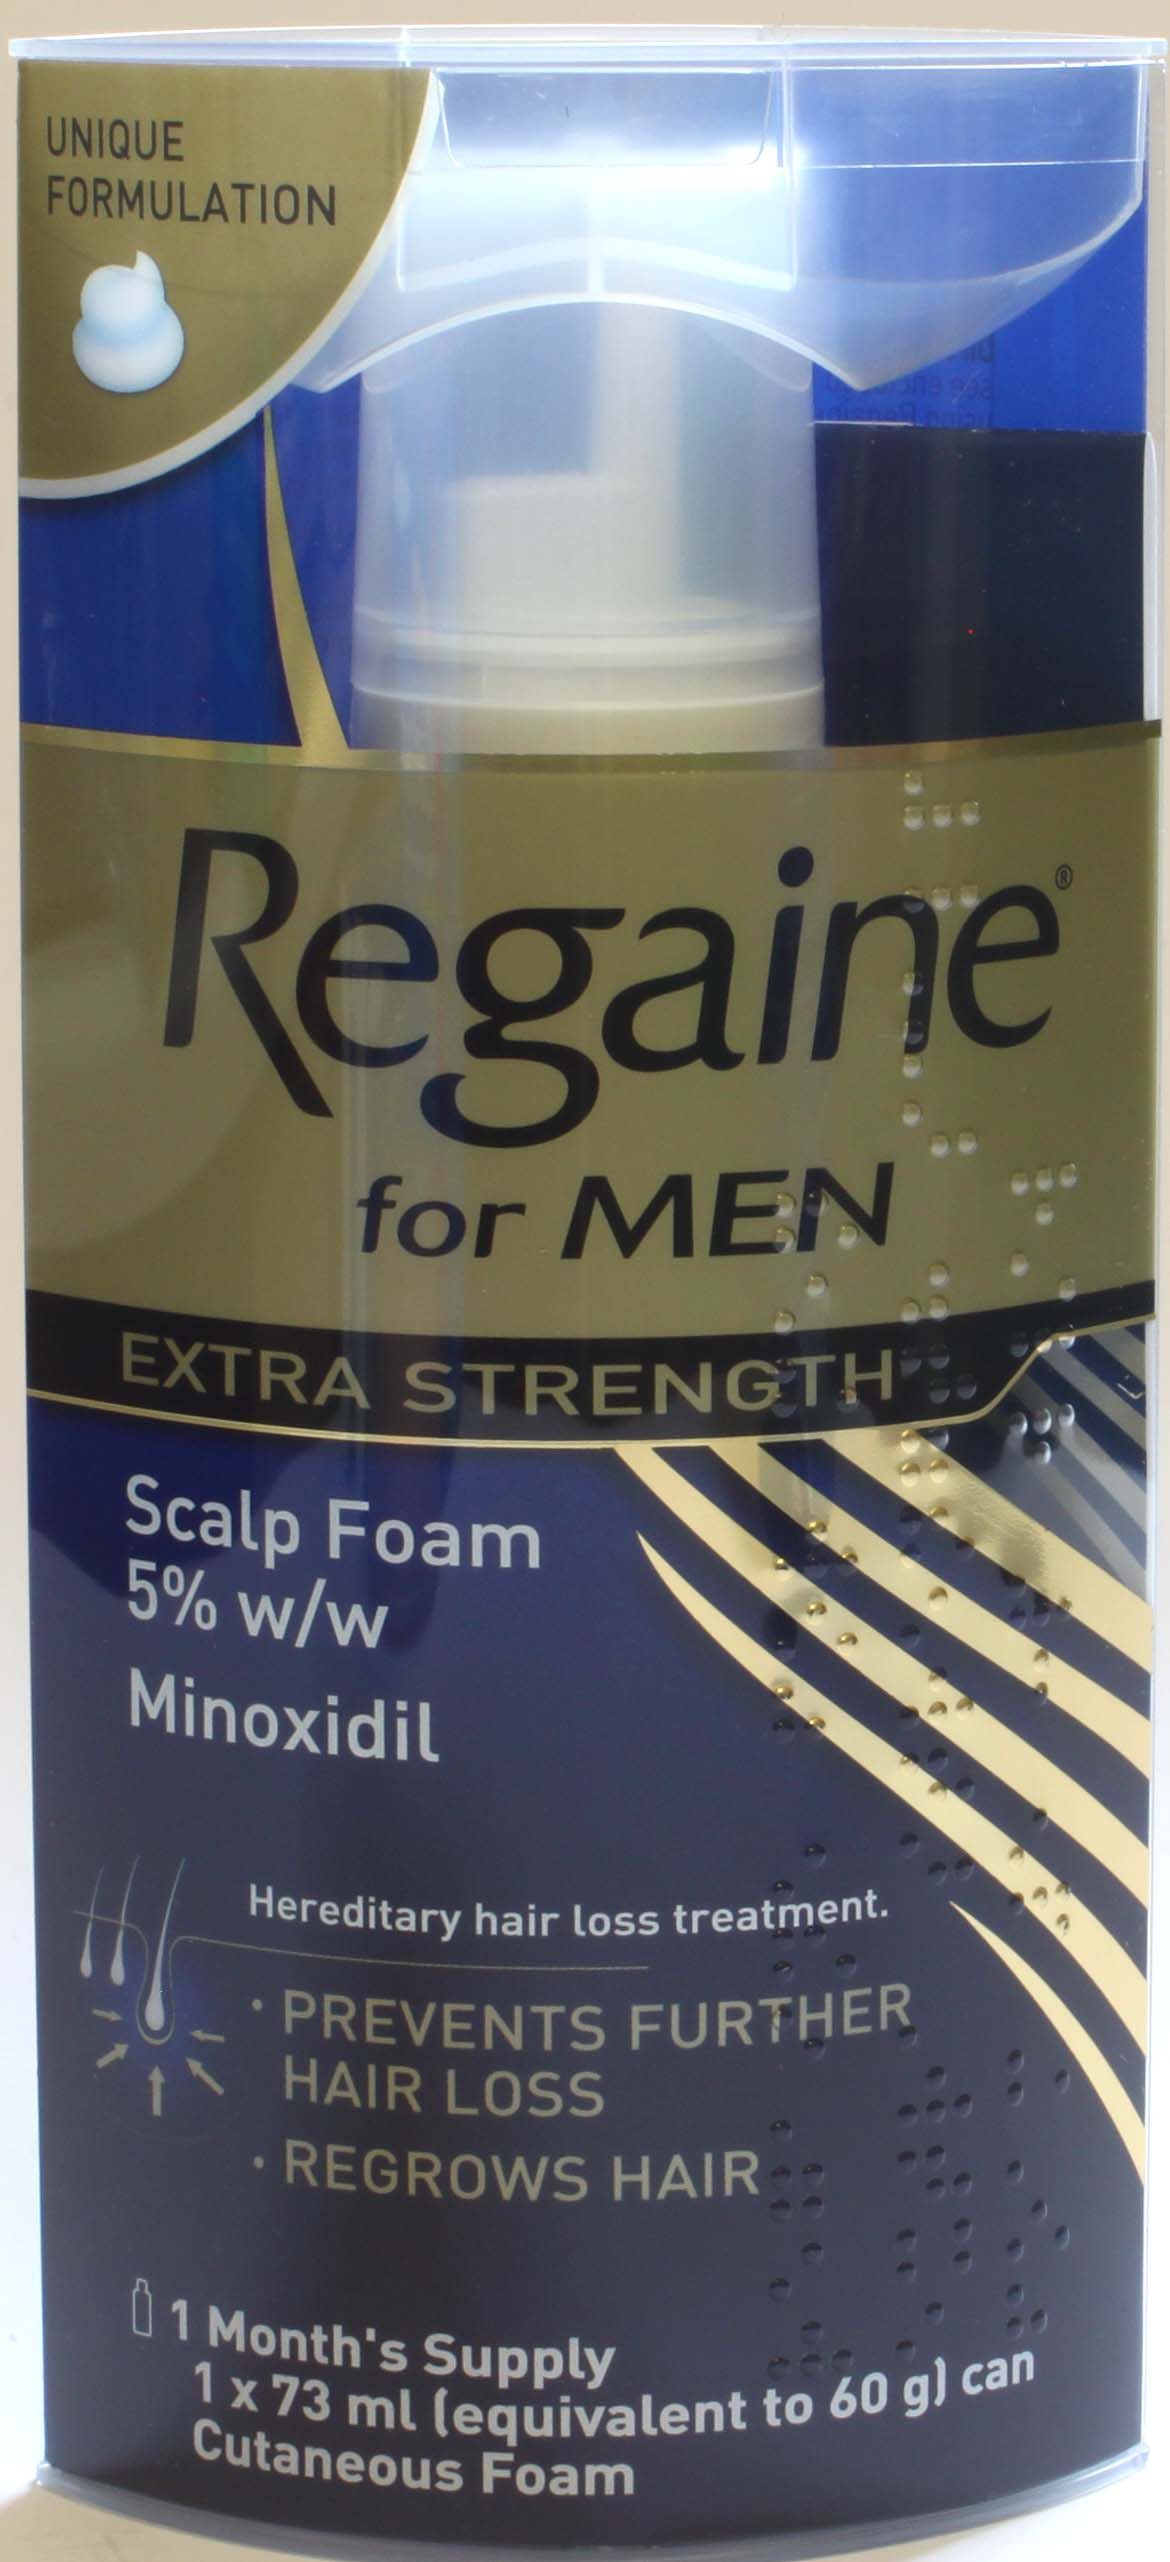 Regaine for Men Extra Strength - 1 month